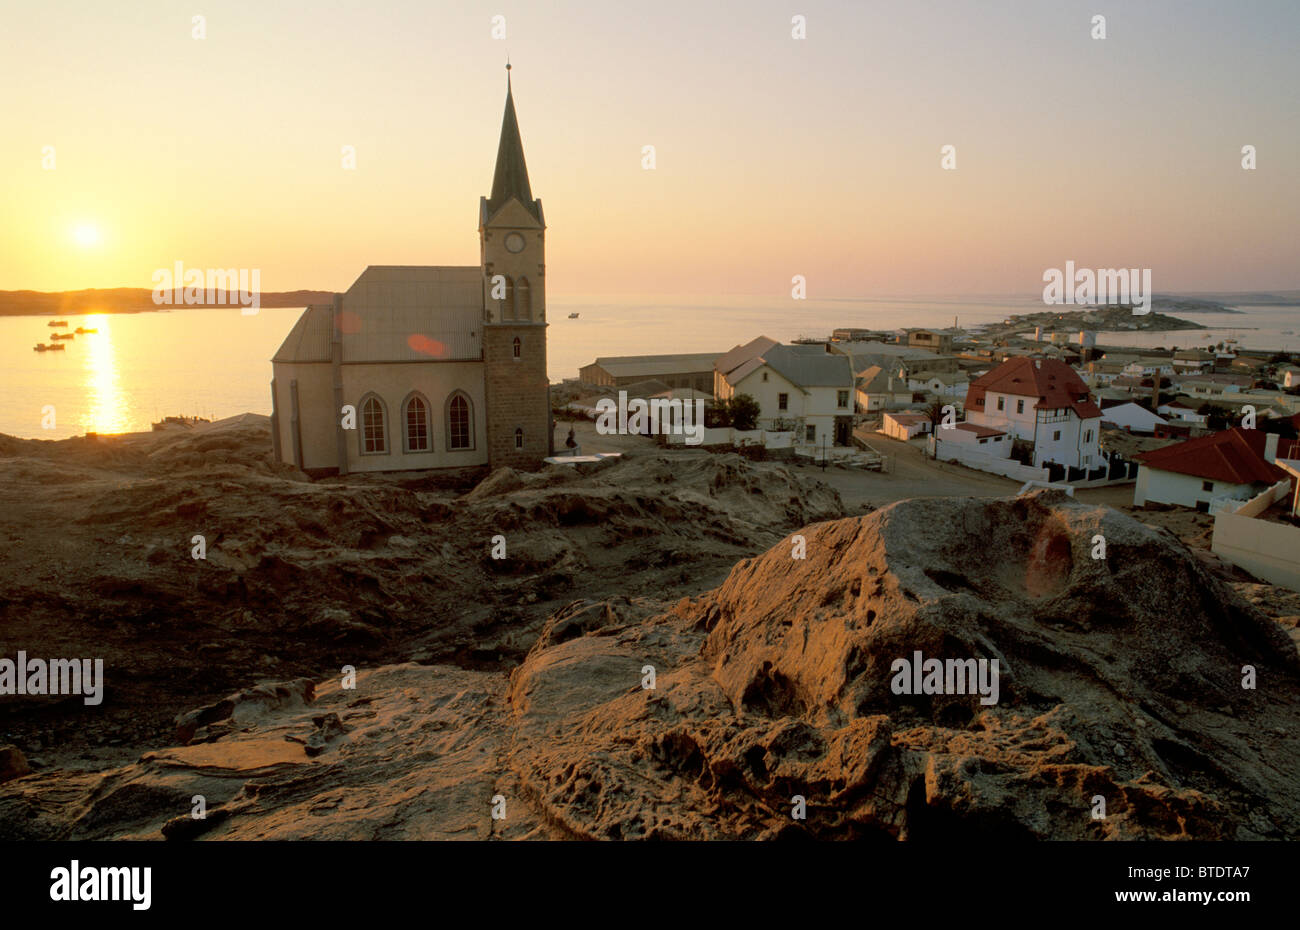 The German Lutheran church and the town of Luderitz with the sun setting over the harbour - Stock Image